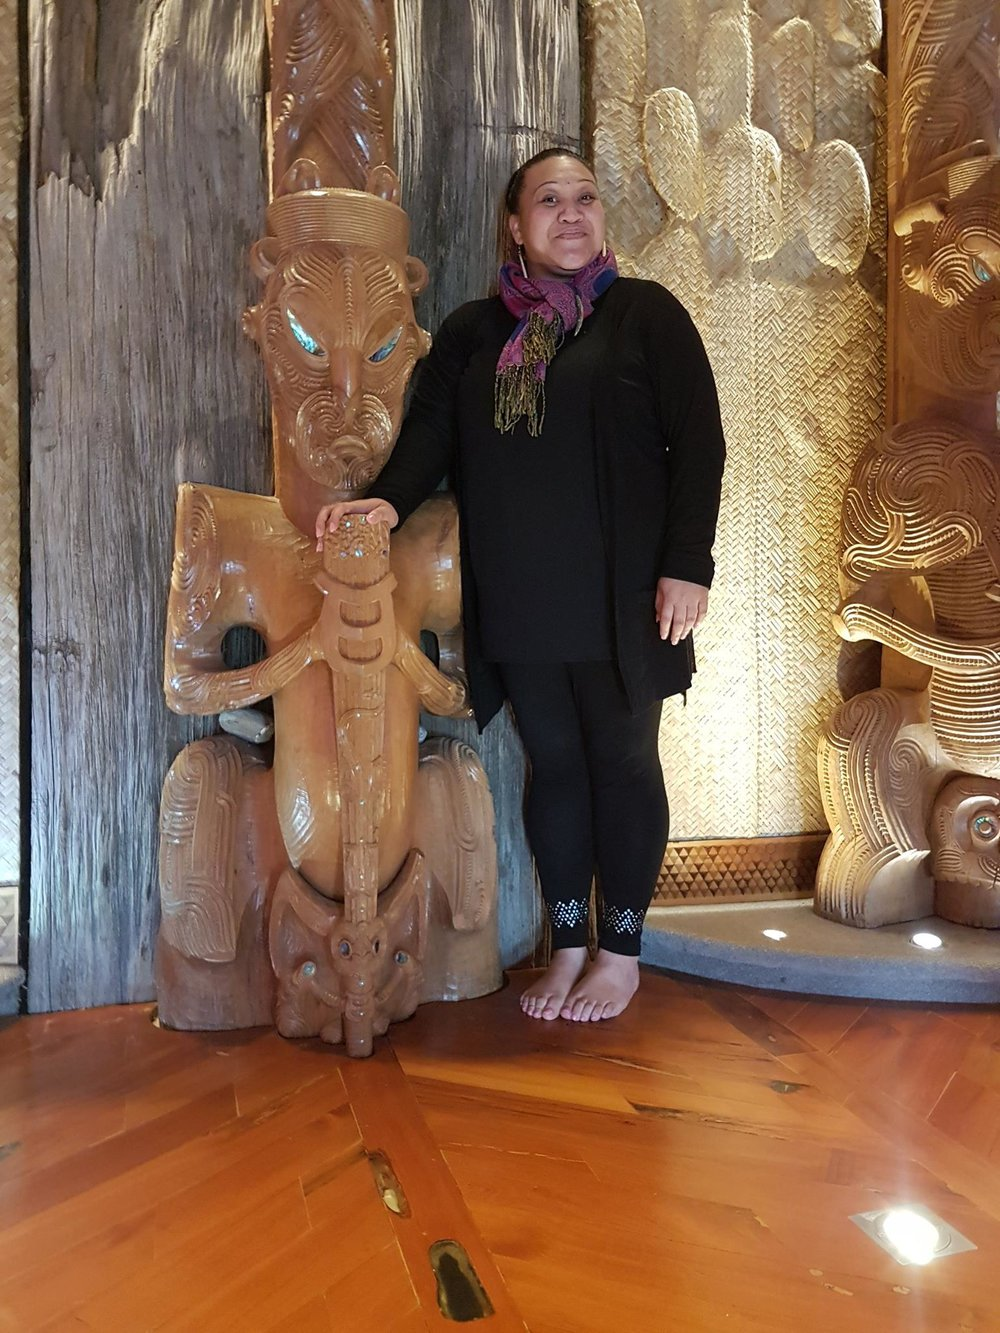 above: A pre-European Māori gardening implement, an  adze, found in the Sanctuary Mahi Whenua is embedded in the floor in front of a carving in Unitec's whare whakairo (carved meeting house) 'Ngākau Māhaki'. Jessica Aranui is the marae kaitiaki for this impressive building designed and built by Te Arawa master carver Lyonel Grant